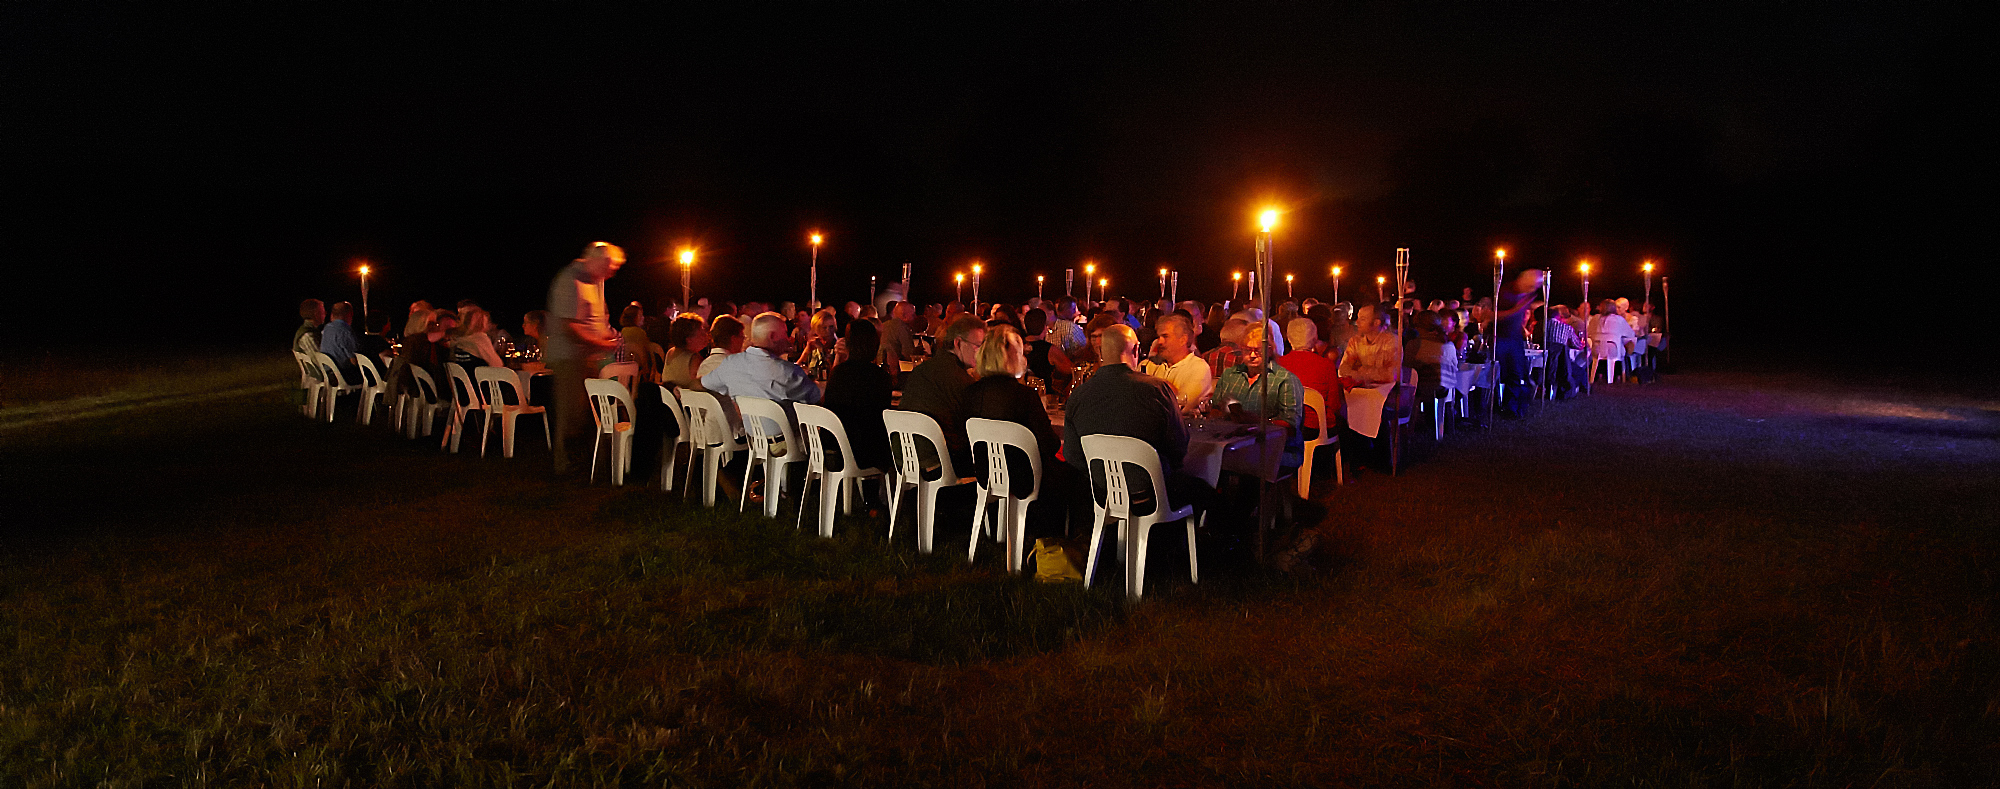 Earth Hour 2015 - Plates in the Paddock